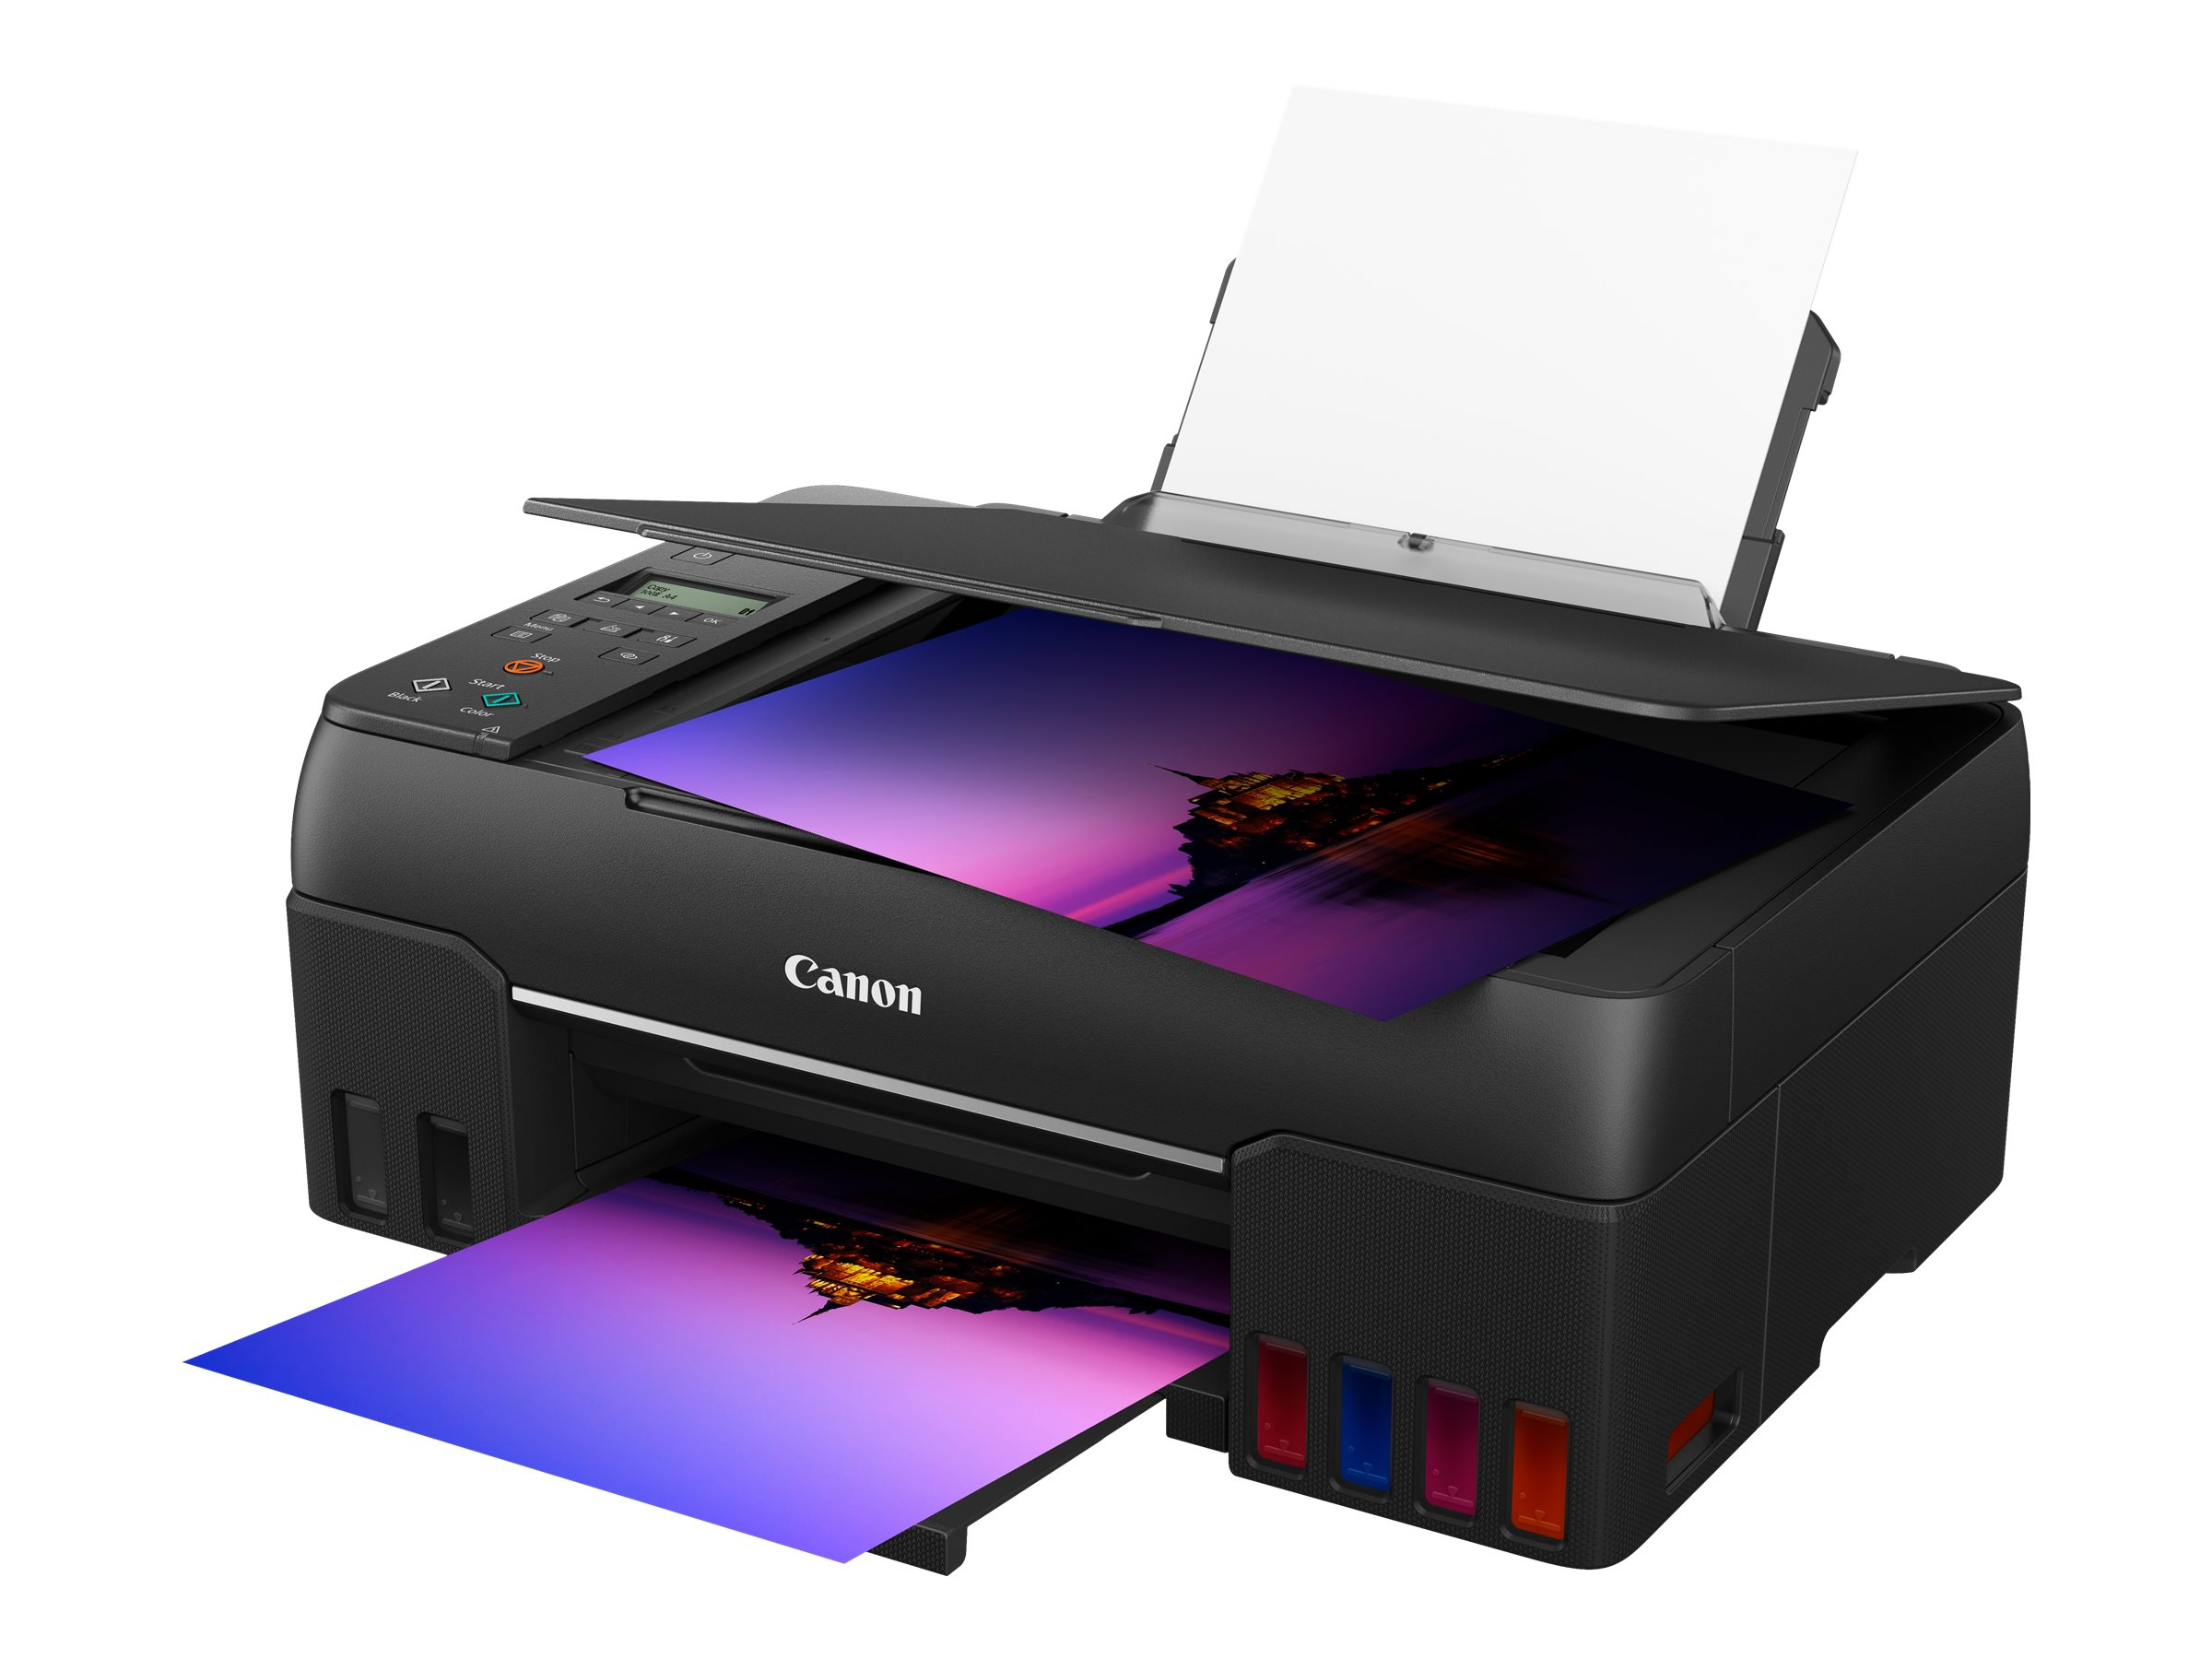 Canon PIXMA G650 - Multifunktionsdrucker - Farbe - Tintenstrahl - refillable - A4 (210 x 297 mm), Letter A (216 x 279 mm) (Original)